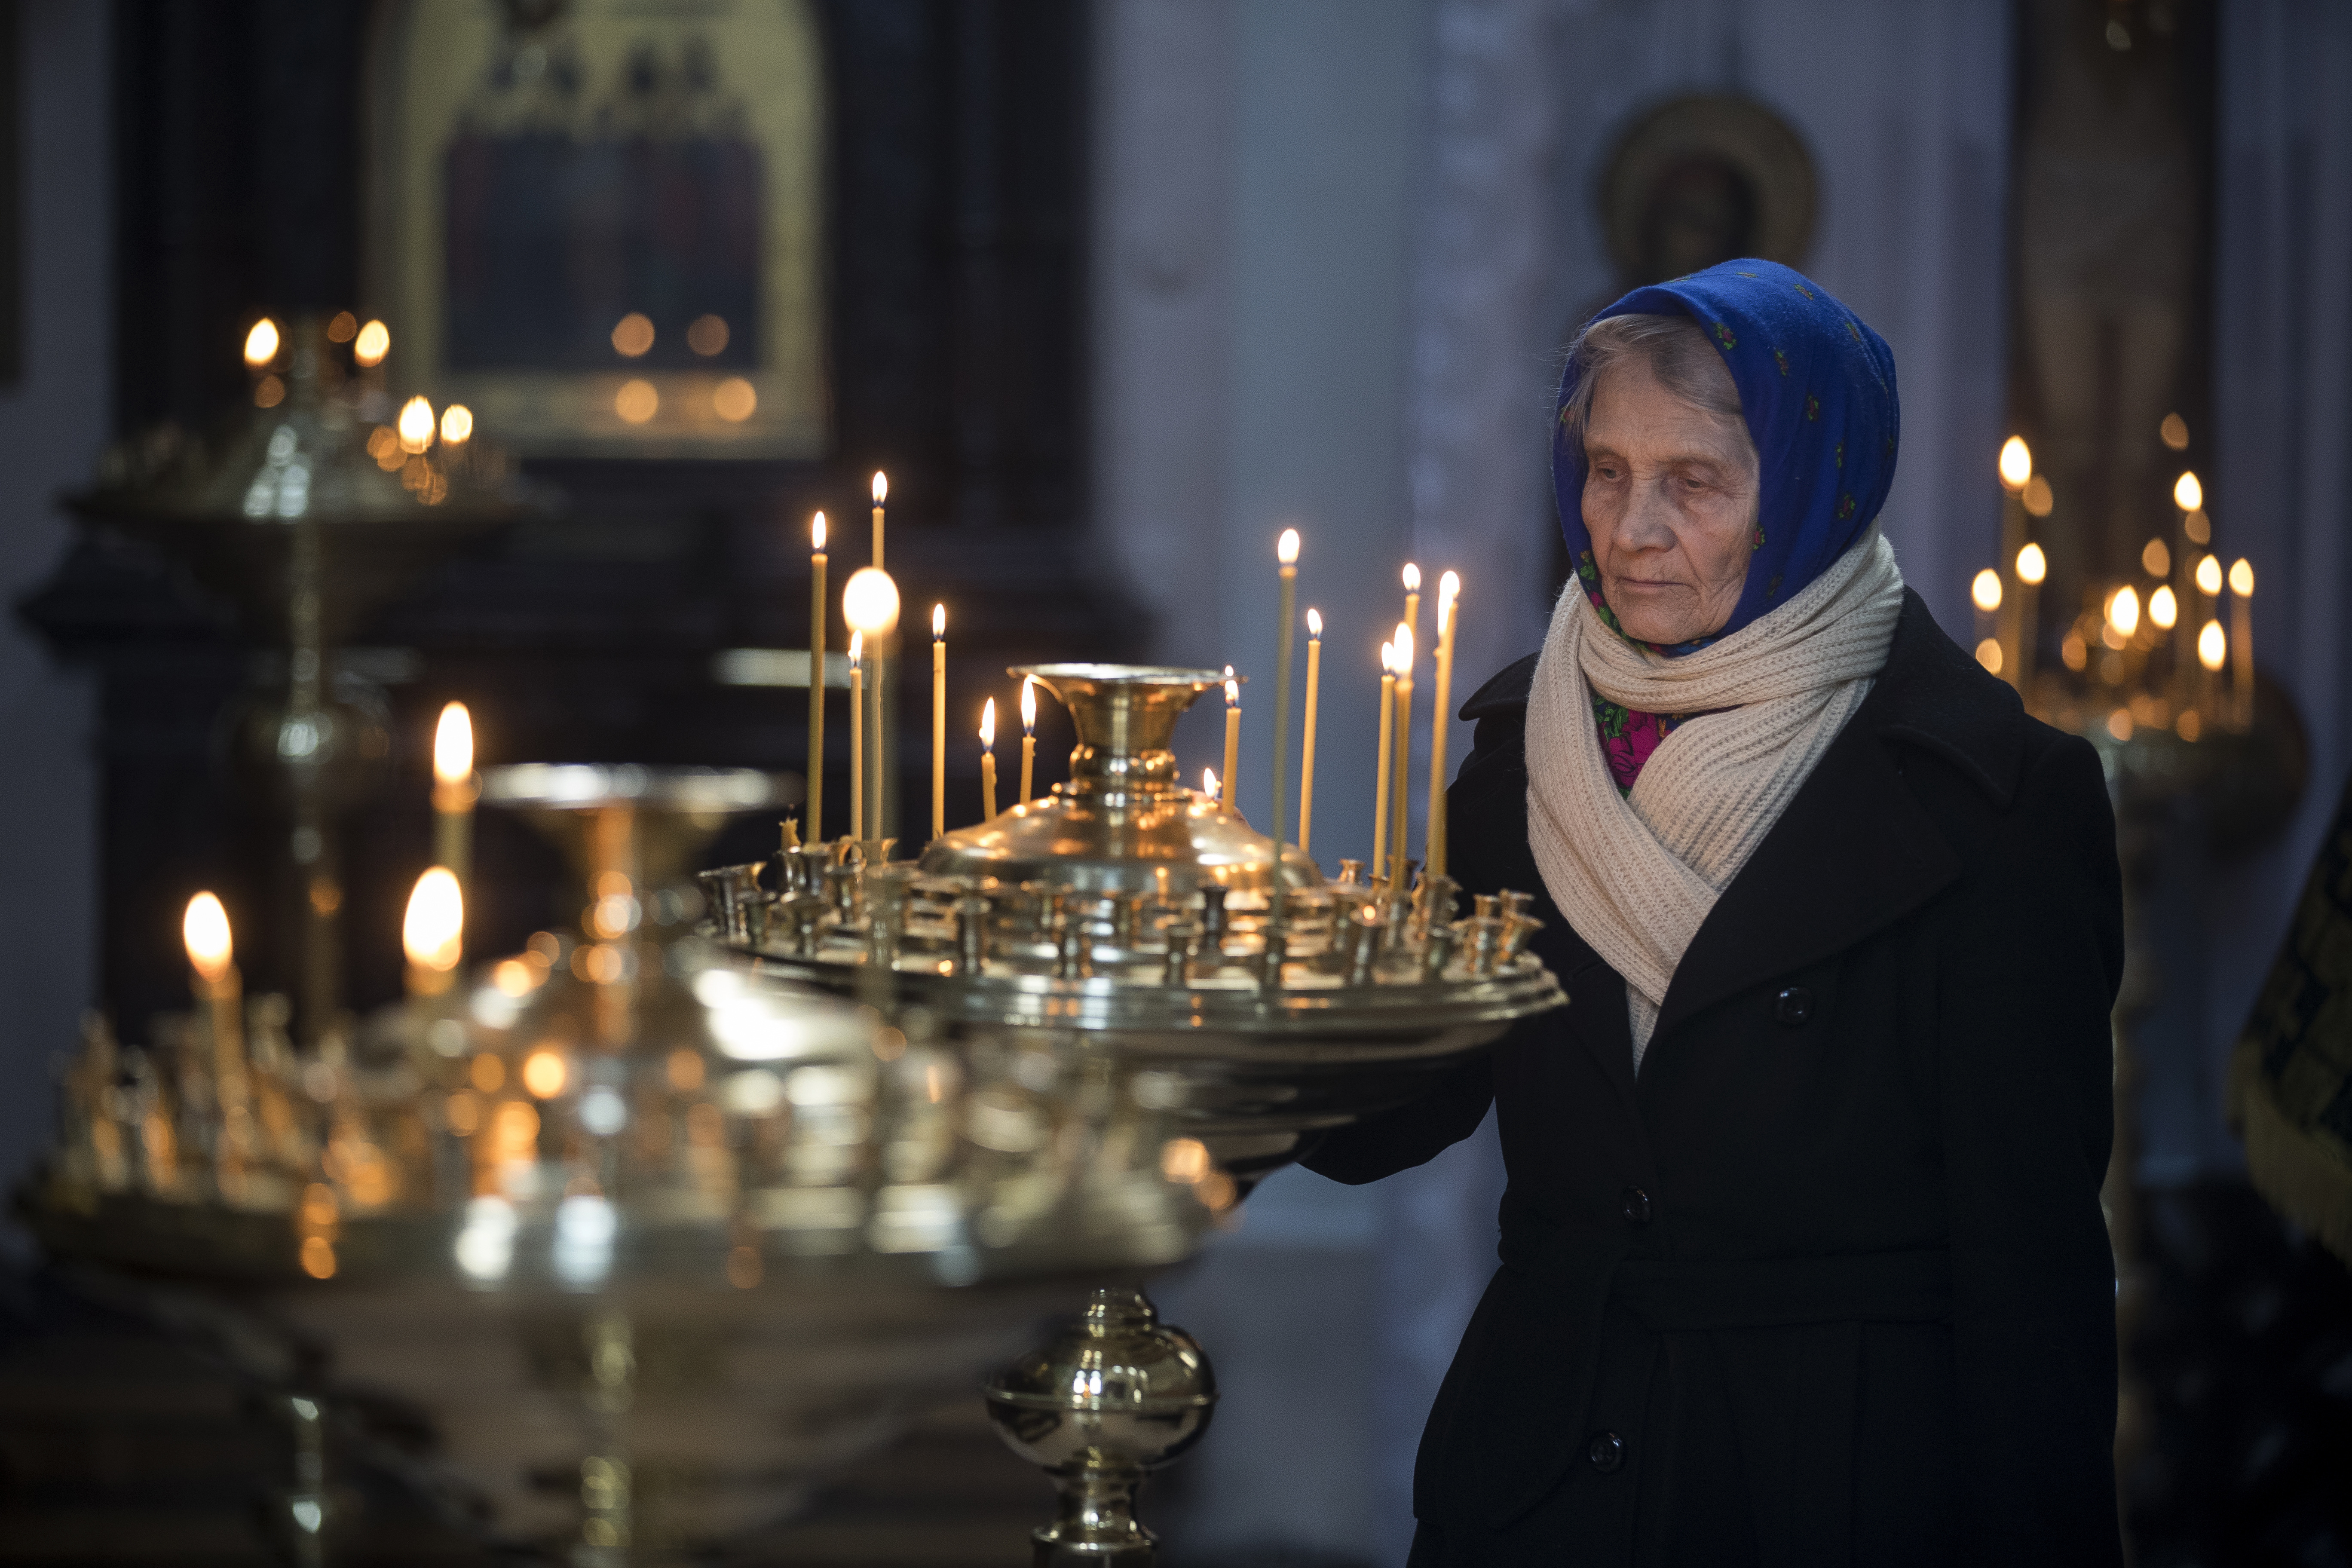 A woman lights a candle during a Good Friday Mass, at the Prechistensky, the Cathedral Palace in Vilnius, Lithuania, Friday, April 6, 2018. Orthodox Christians around the world celebrate Easter on Sunday, April 8.(AP Photo/Mindaugas Kulbis)